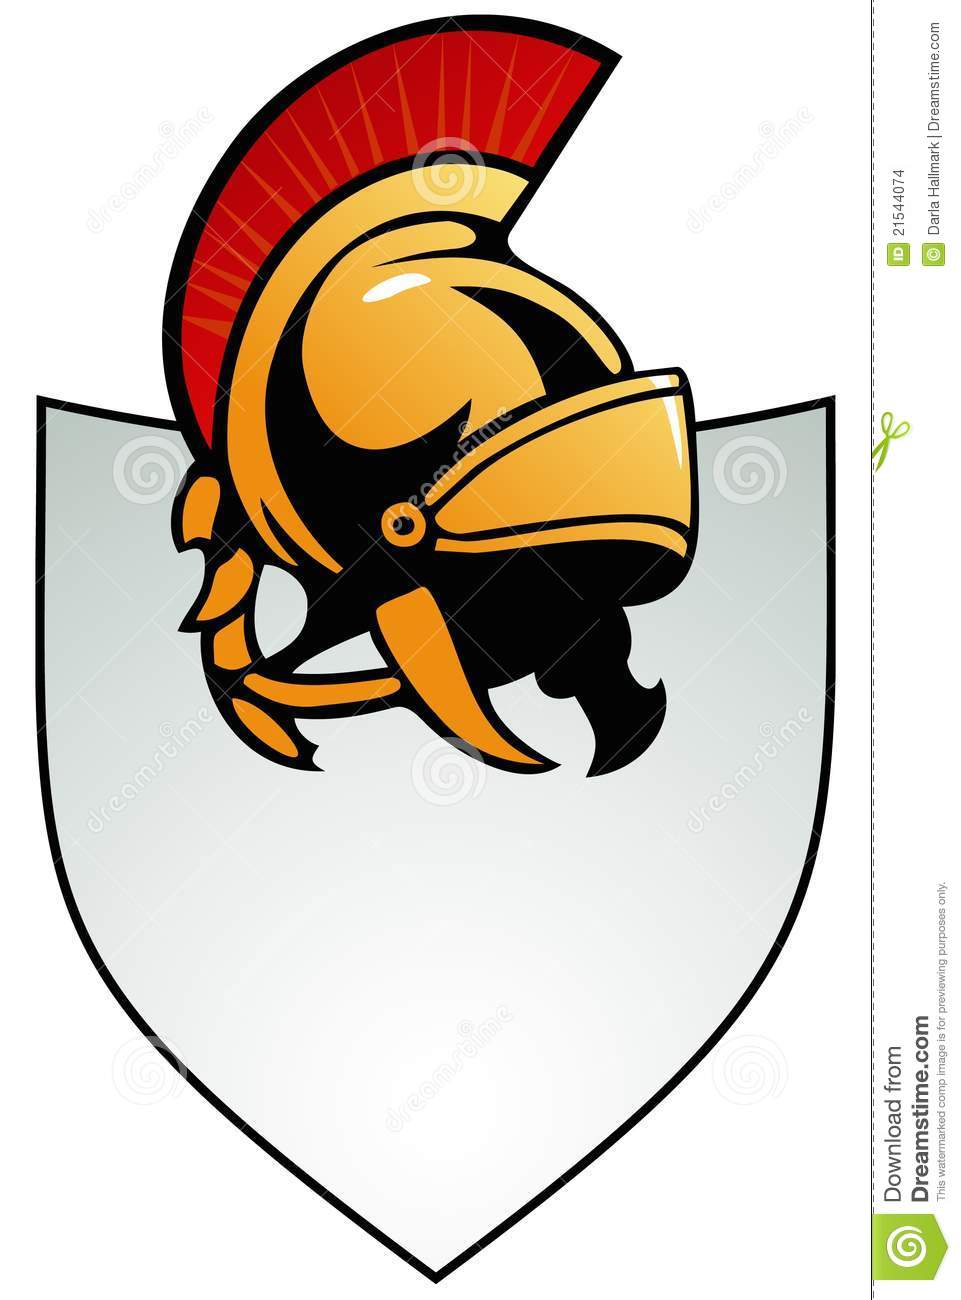 961x1300 Shield clipart gladiator